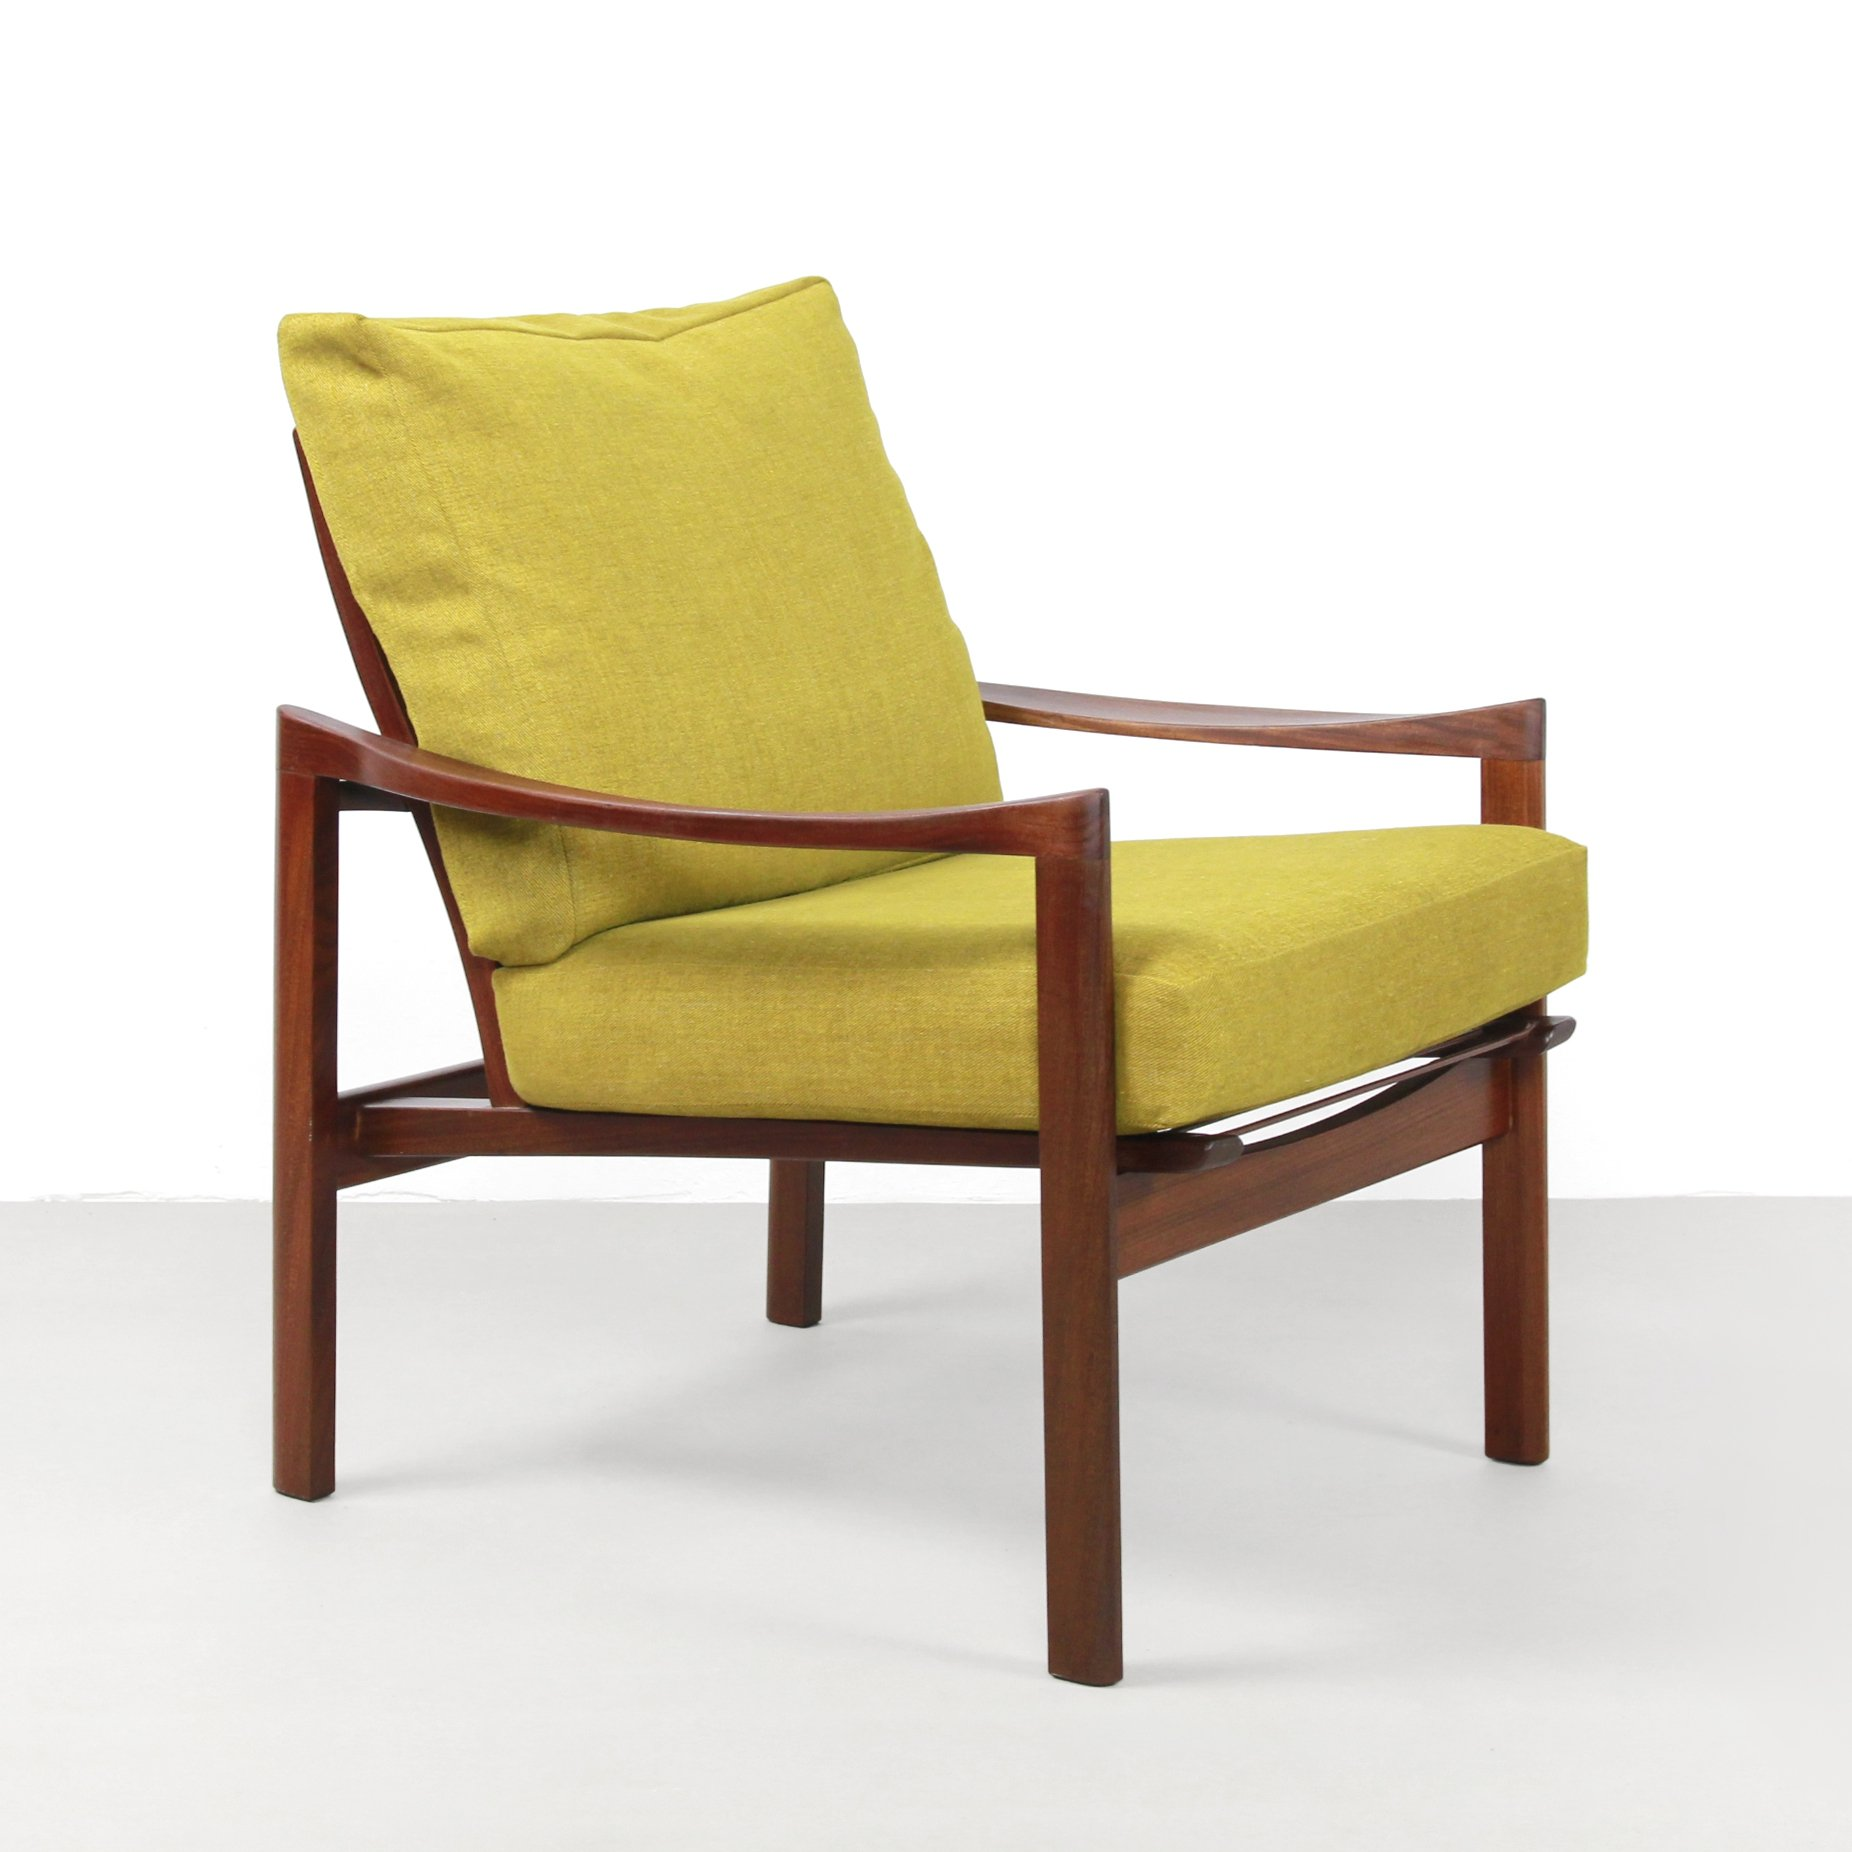 Teak Danish Design Armchair 1960s 98737